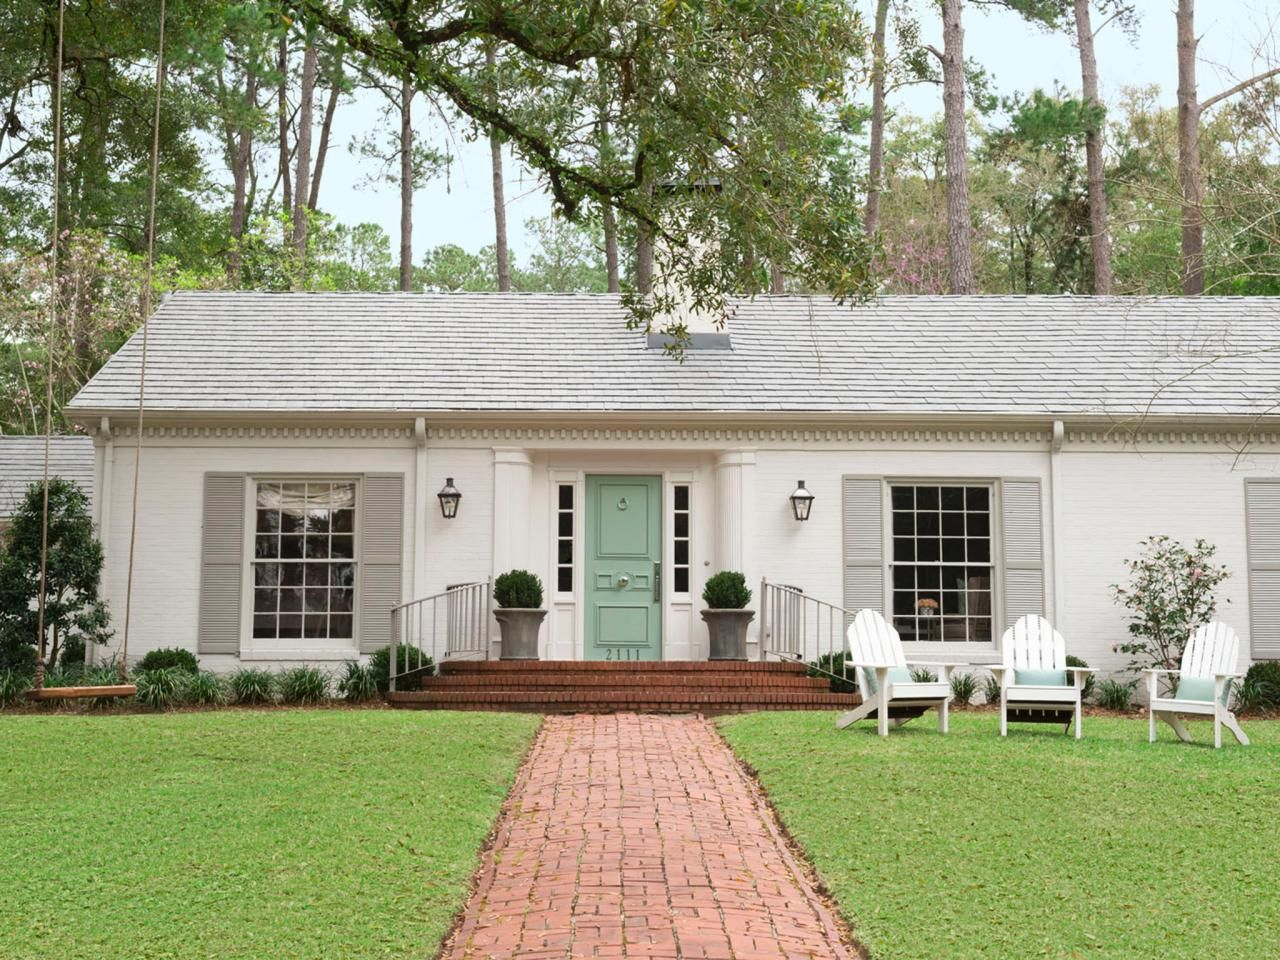 Incredible 17 Best Ideas About Exterior House Colors On Pinterest Home Largest Home Design Picture Inspirations Pitcheantrous